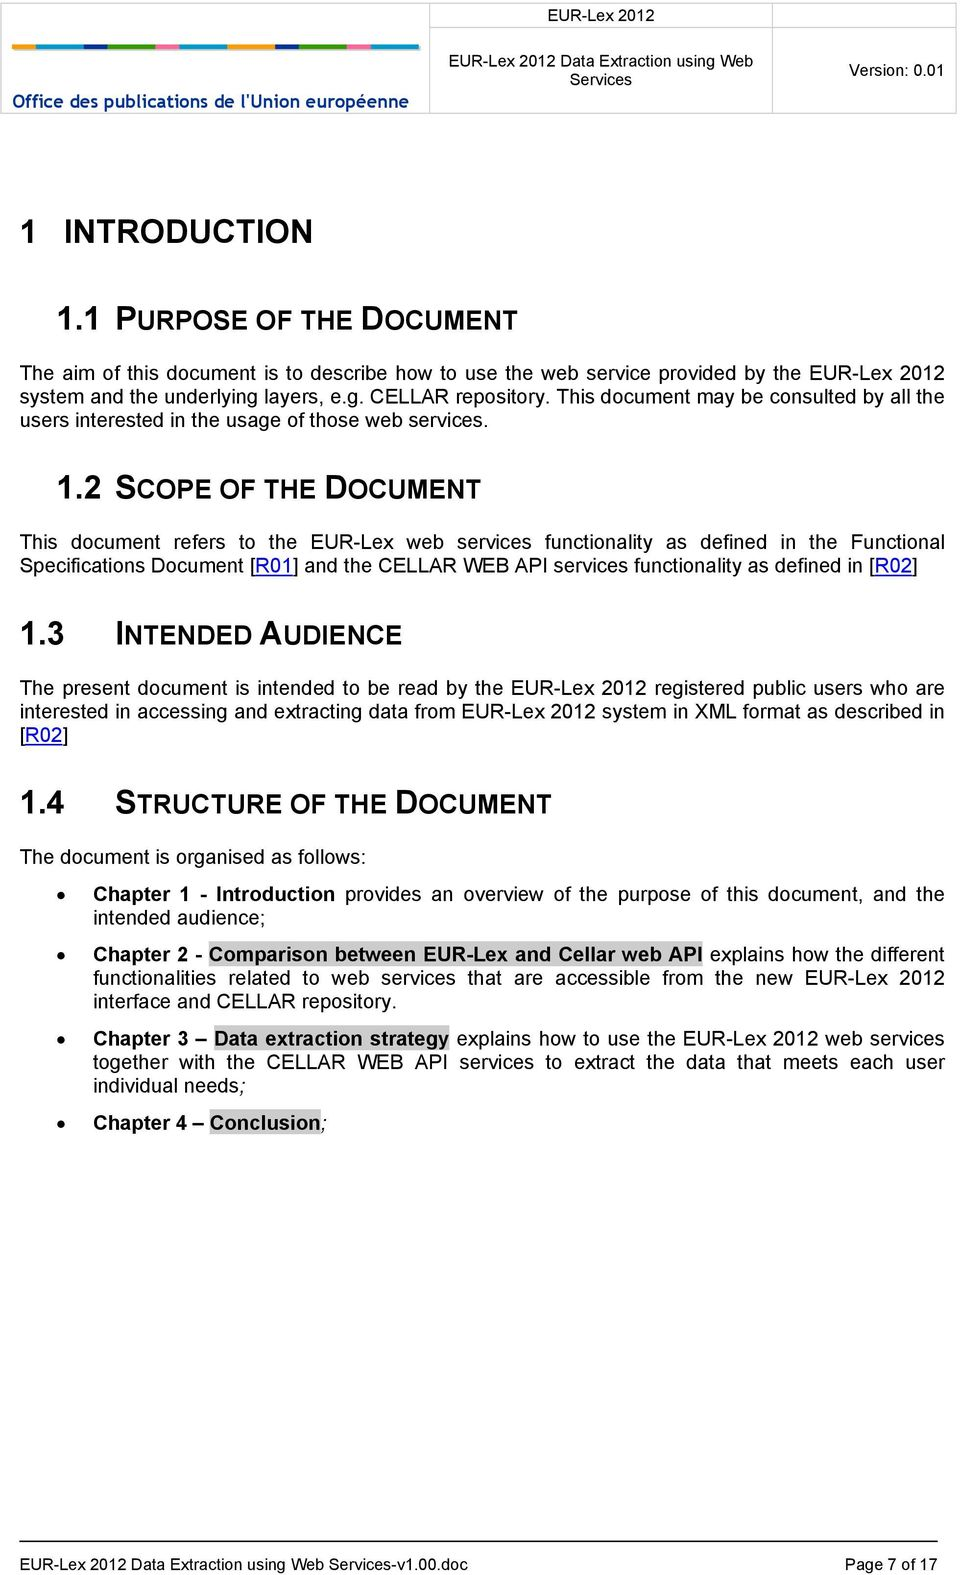 2 SCOPE OF THE DOCUMENT This document refers to the EUR-Lex web services functionality as defined in the Functional Specifications Document [R01] and the CELLAR WEB API services functionality as